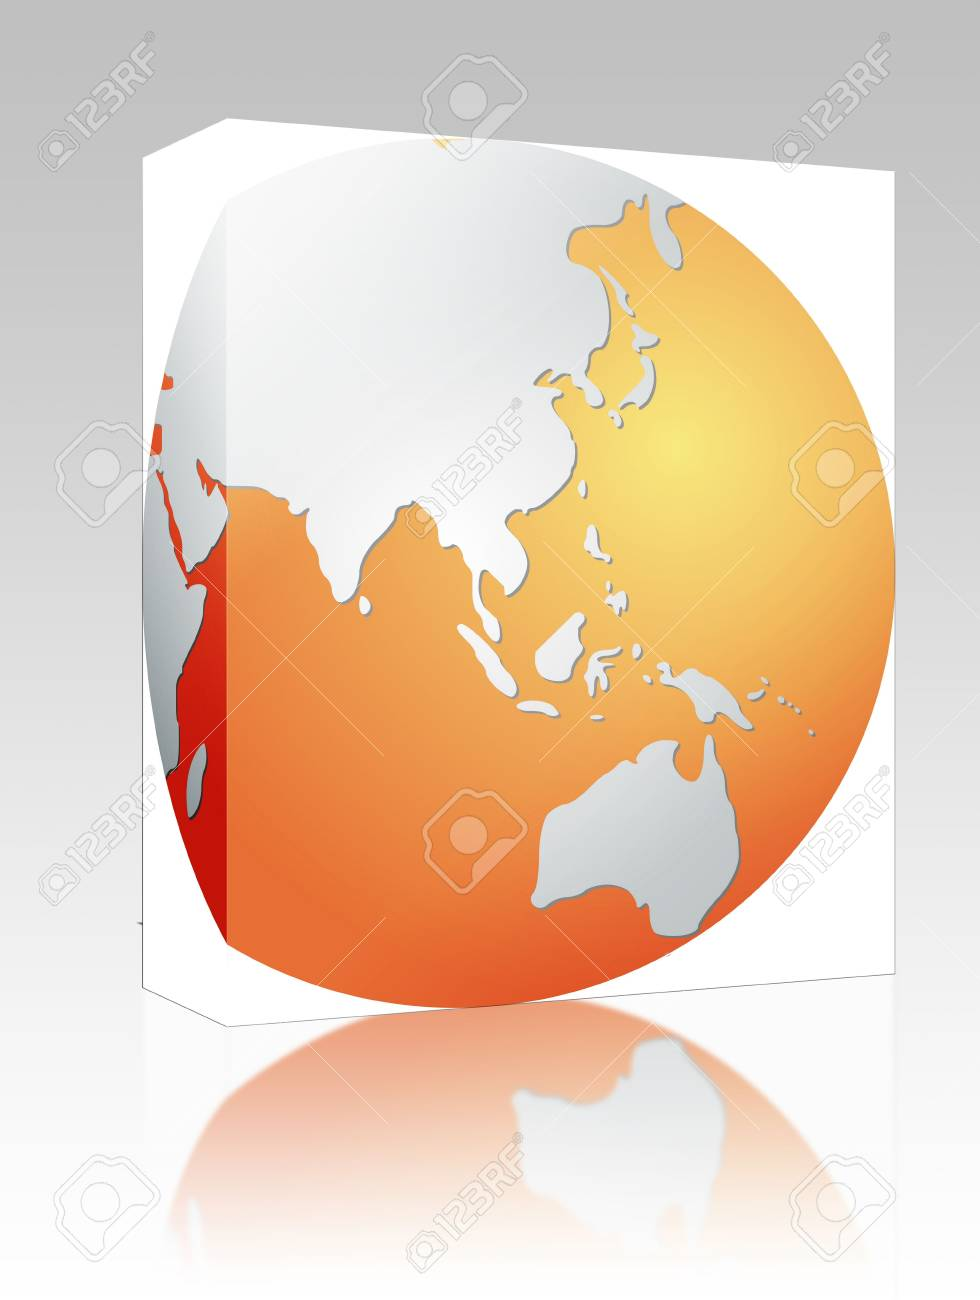 Software package box globe map illustration of the asia pacific illustration software package box globe map illustration of the asia pacific gumiabroncs Images